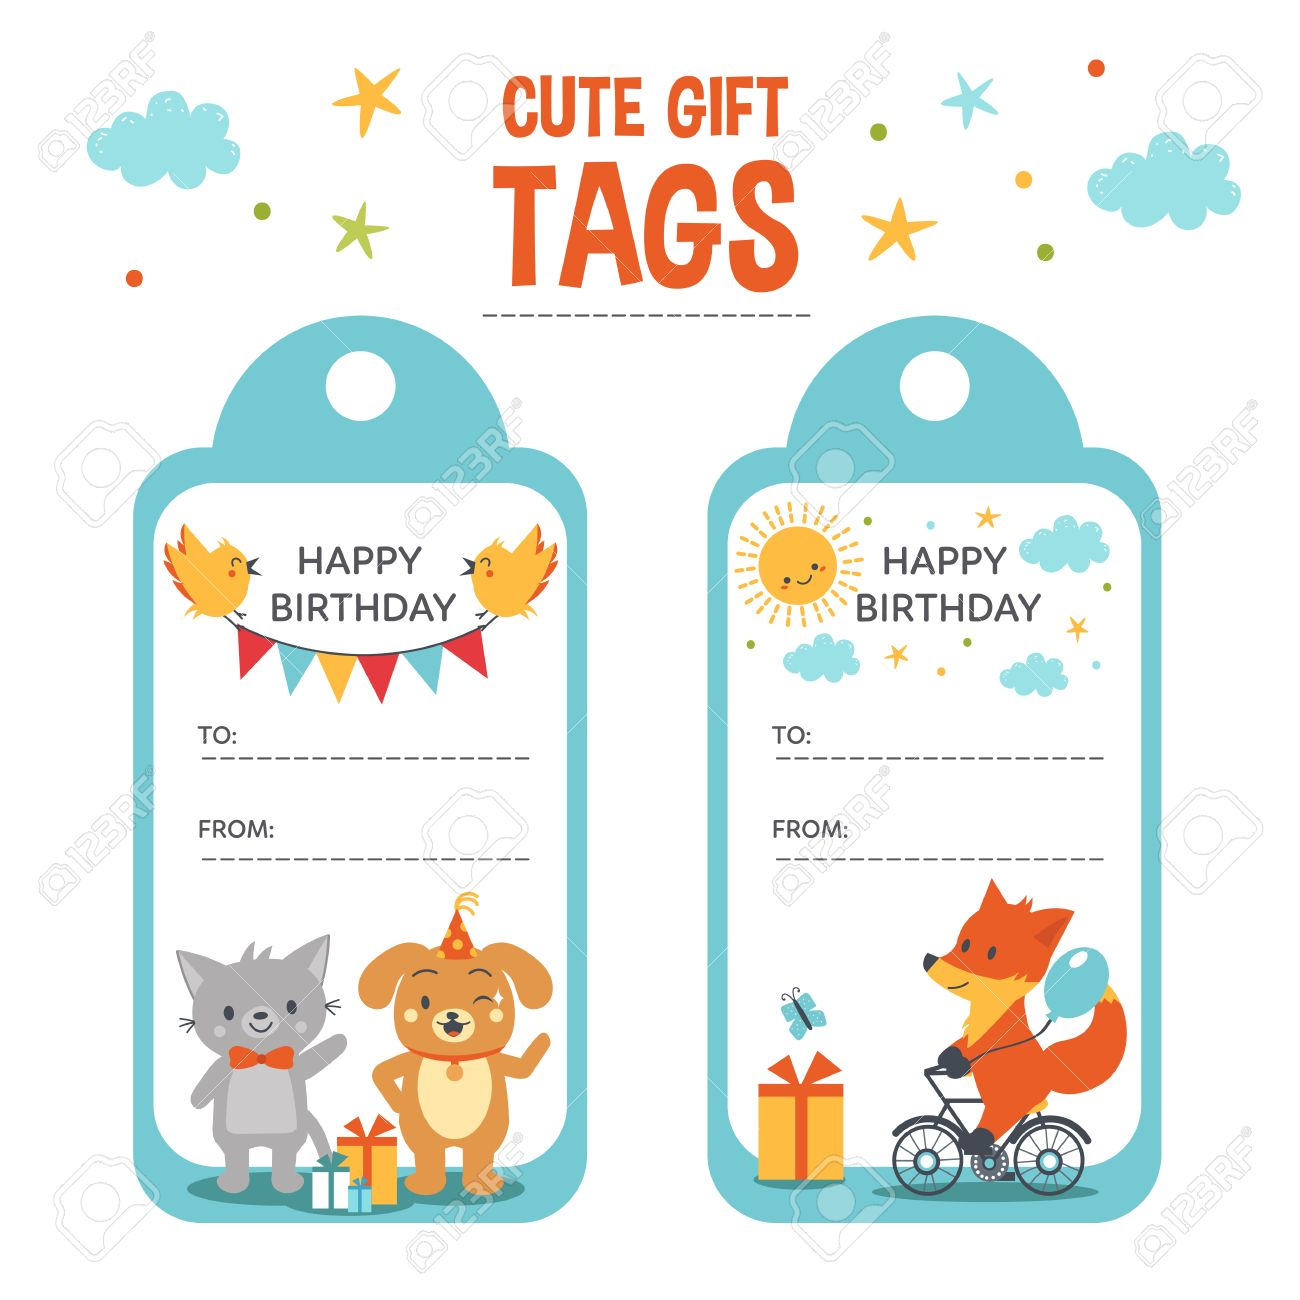 Cute Gift Tags Vector Templates Birthday With Text Place And Animals